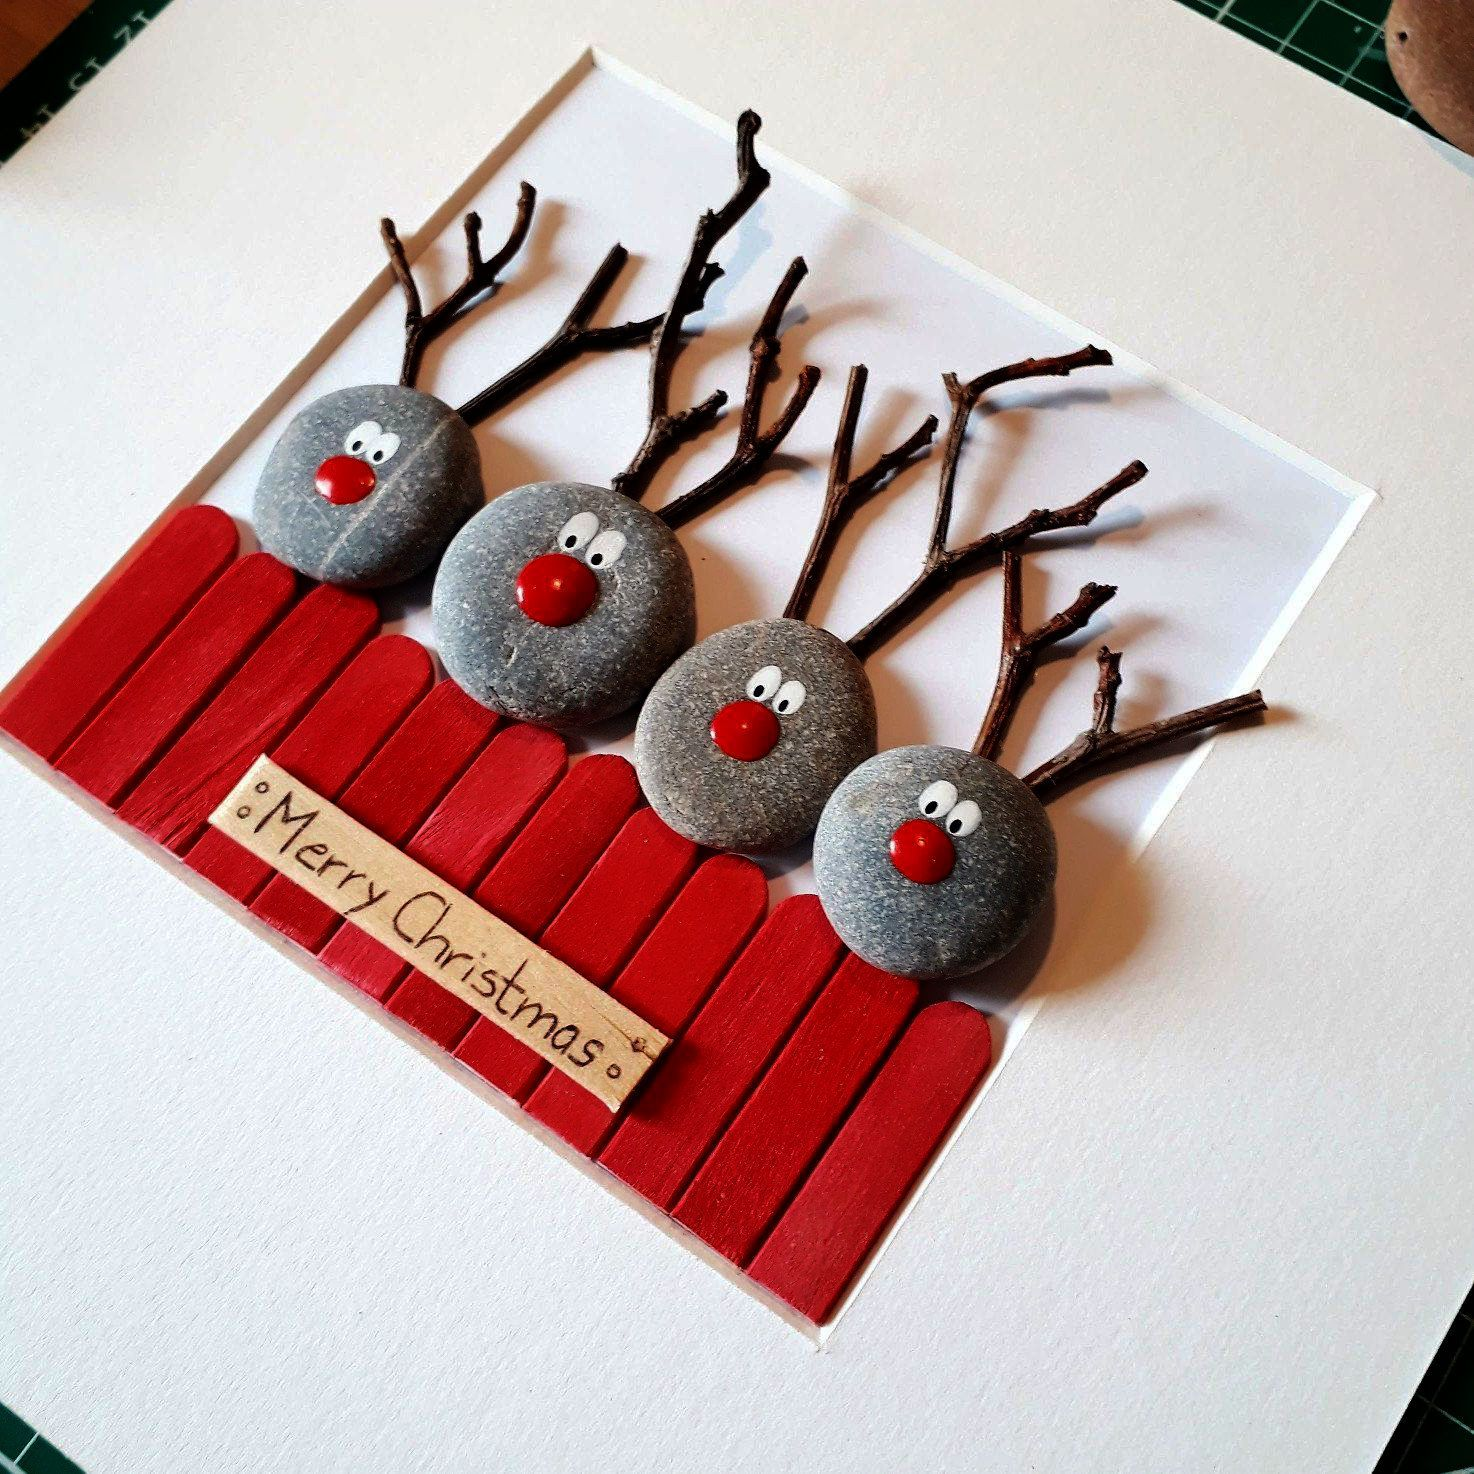 Easy Christmas Crafts To Make And Sell For Profit Neither Sewing Crafts For Christmas Gifts Another E Christmas Crafts Christmas Ornaments Christmas Crafts Diy